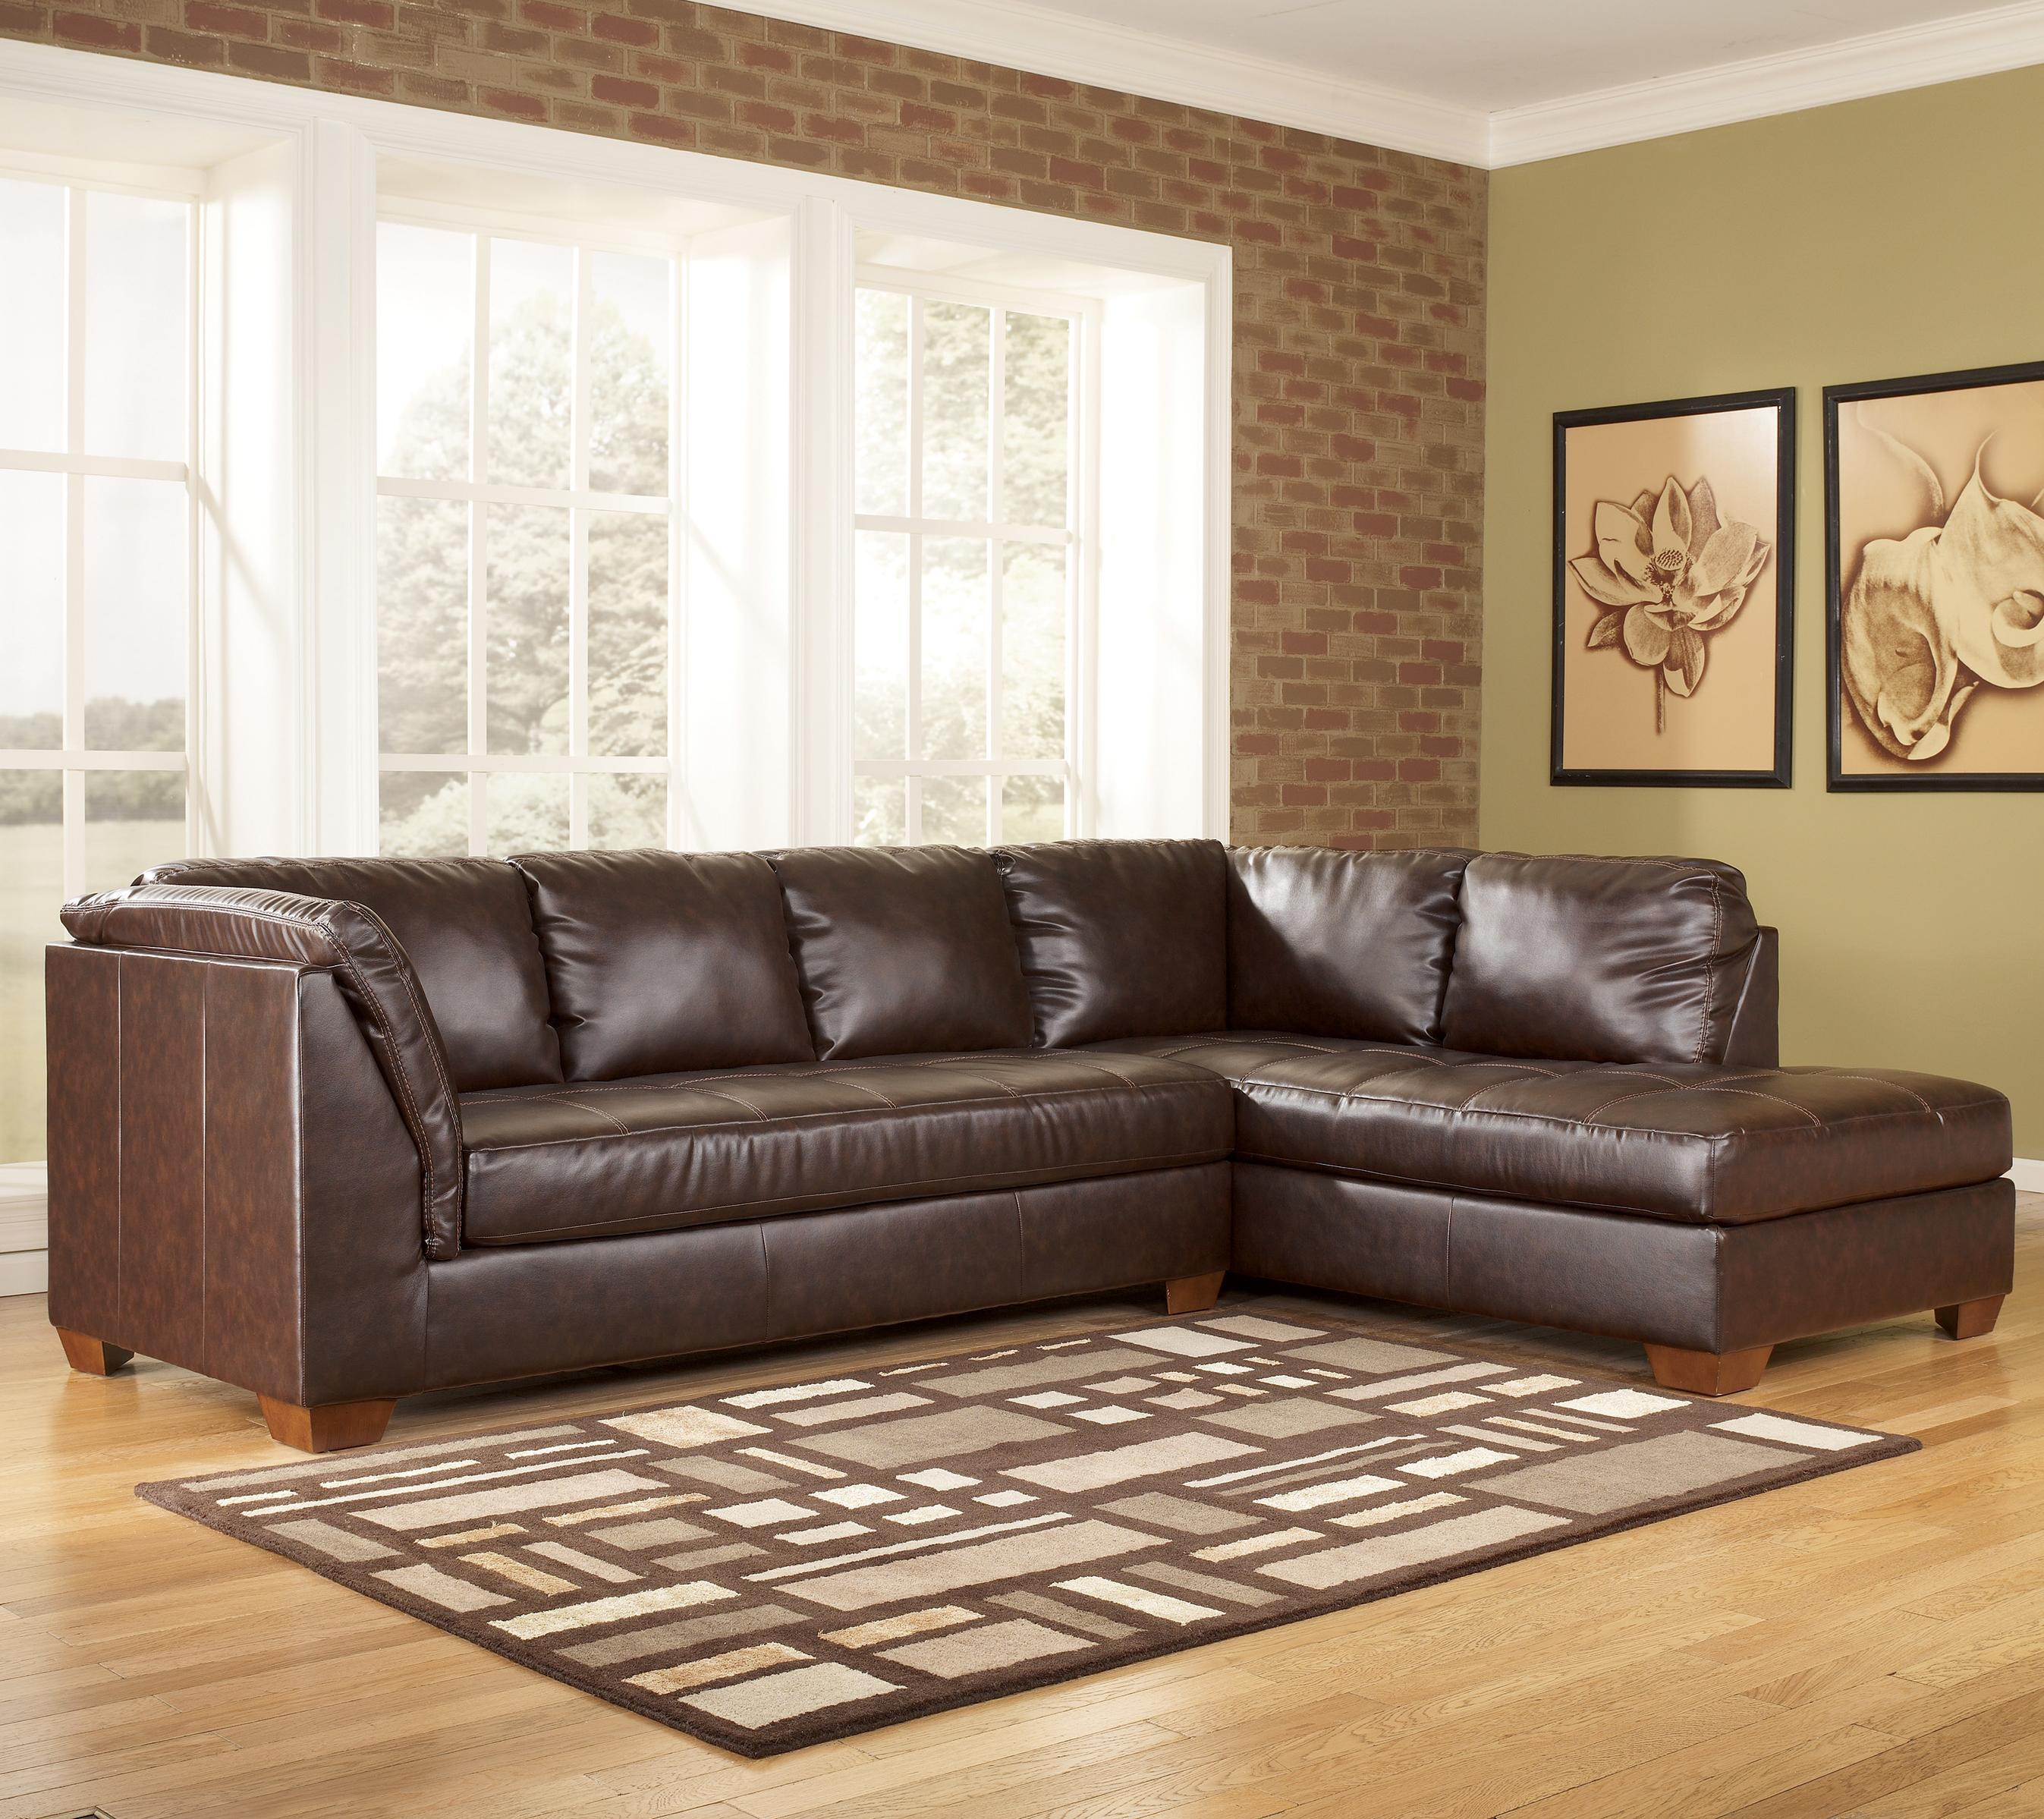 Signature Design by Ashley Fairplay DuraBlend 2 Piece Sofa